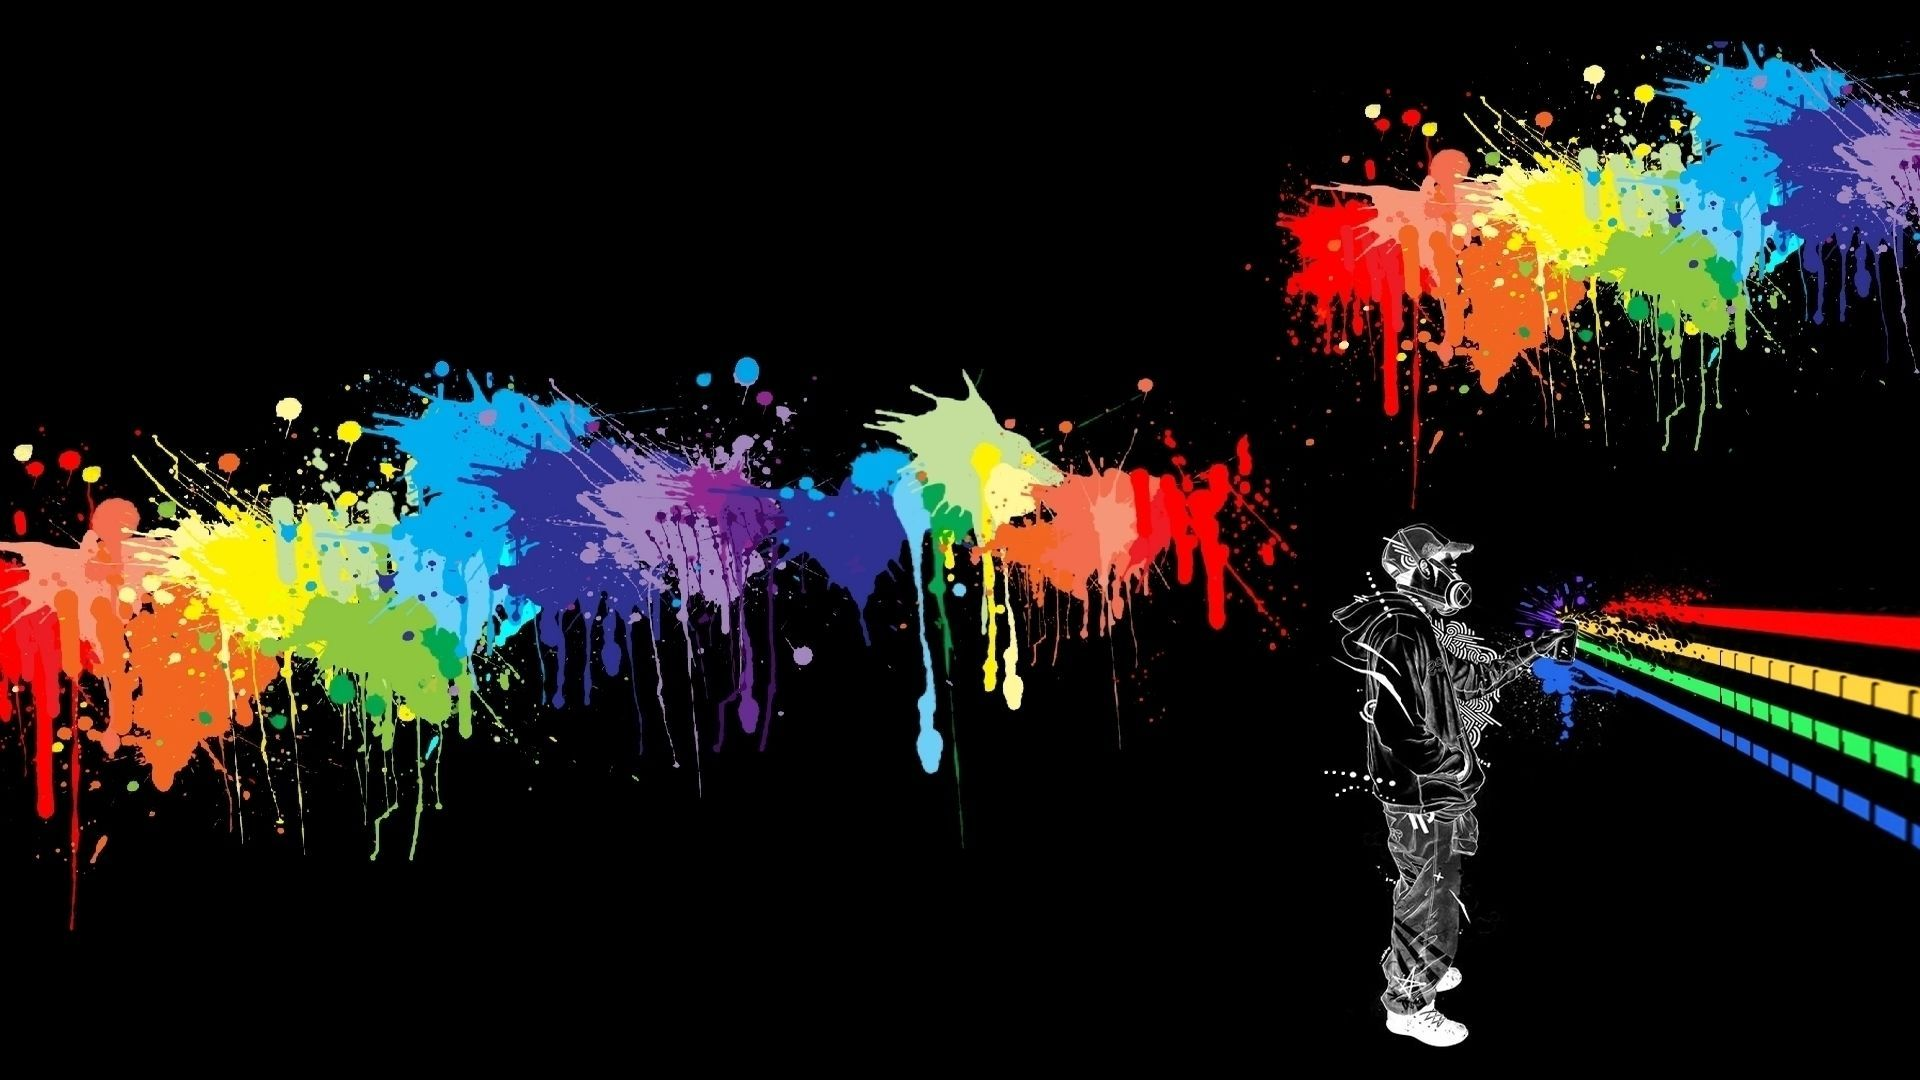 Abstract Cool Graffiti Wallpaper With Splach Paint Color